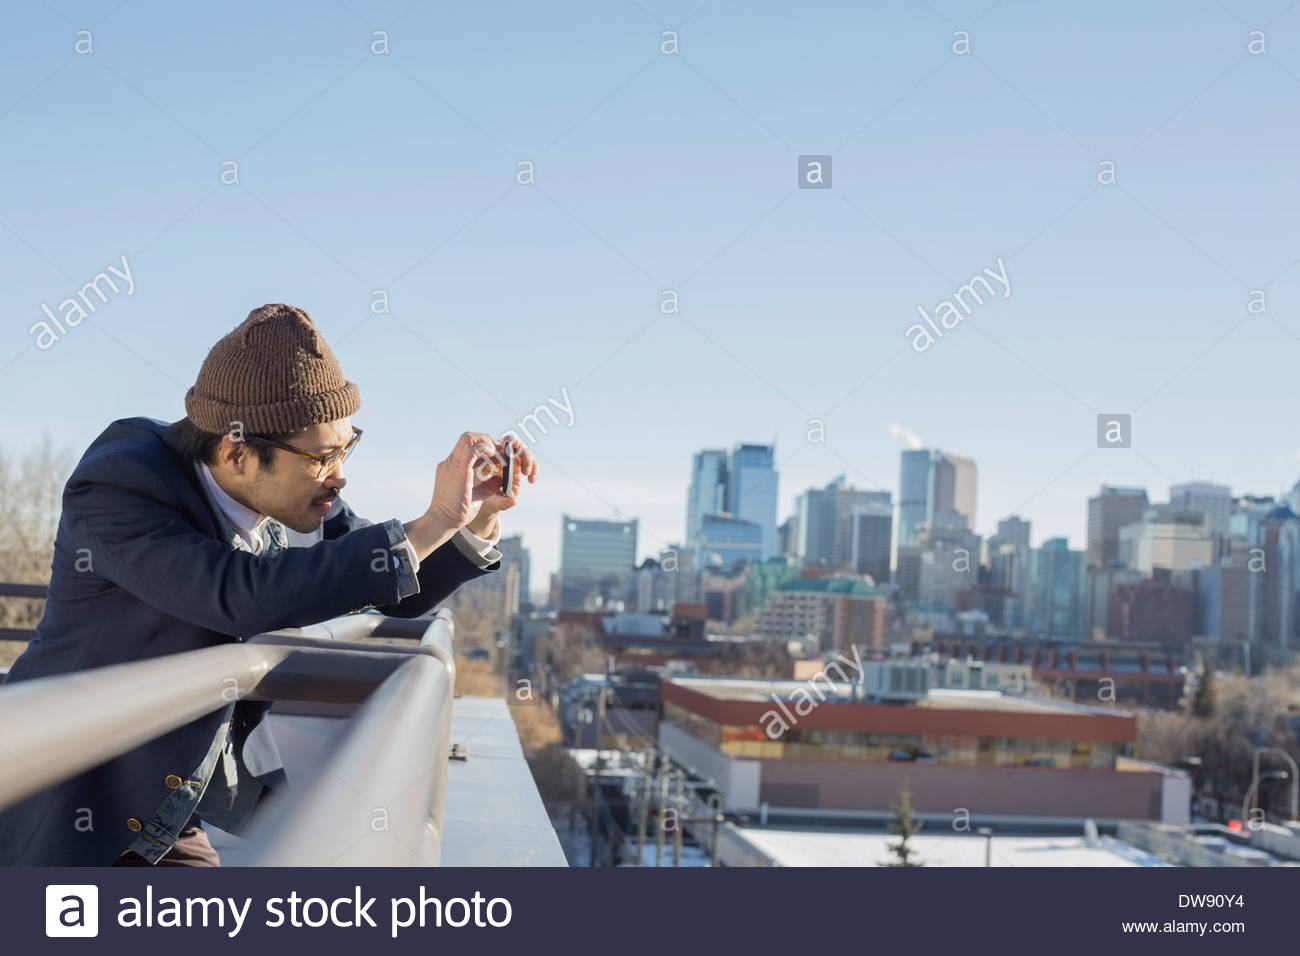 Man photographing cityscape on patio with smart phone - Stock Image